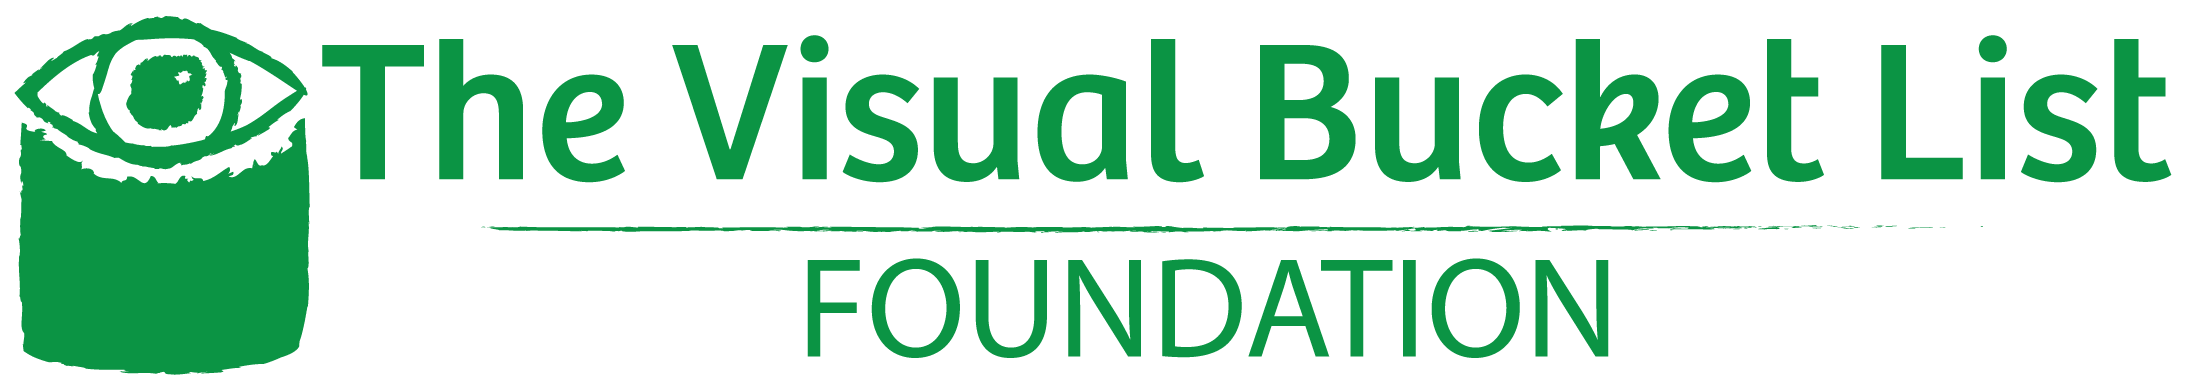 Visual Bucket List Foundation